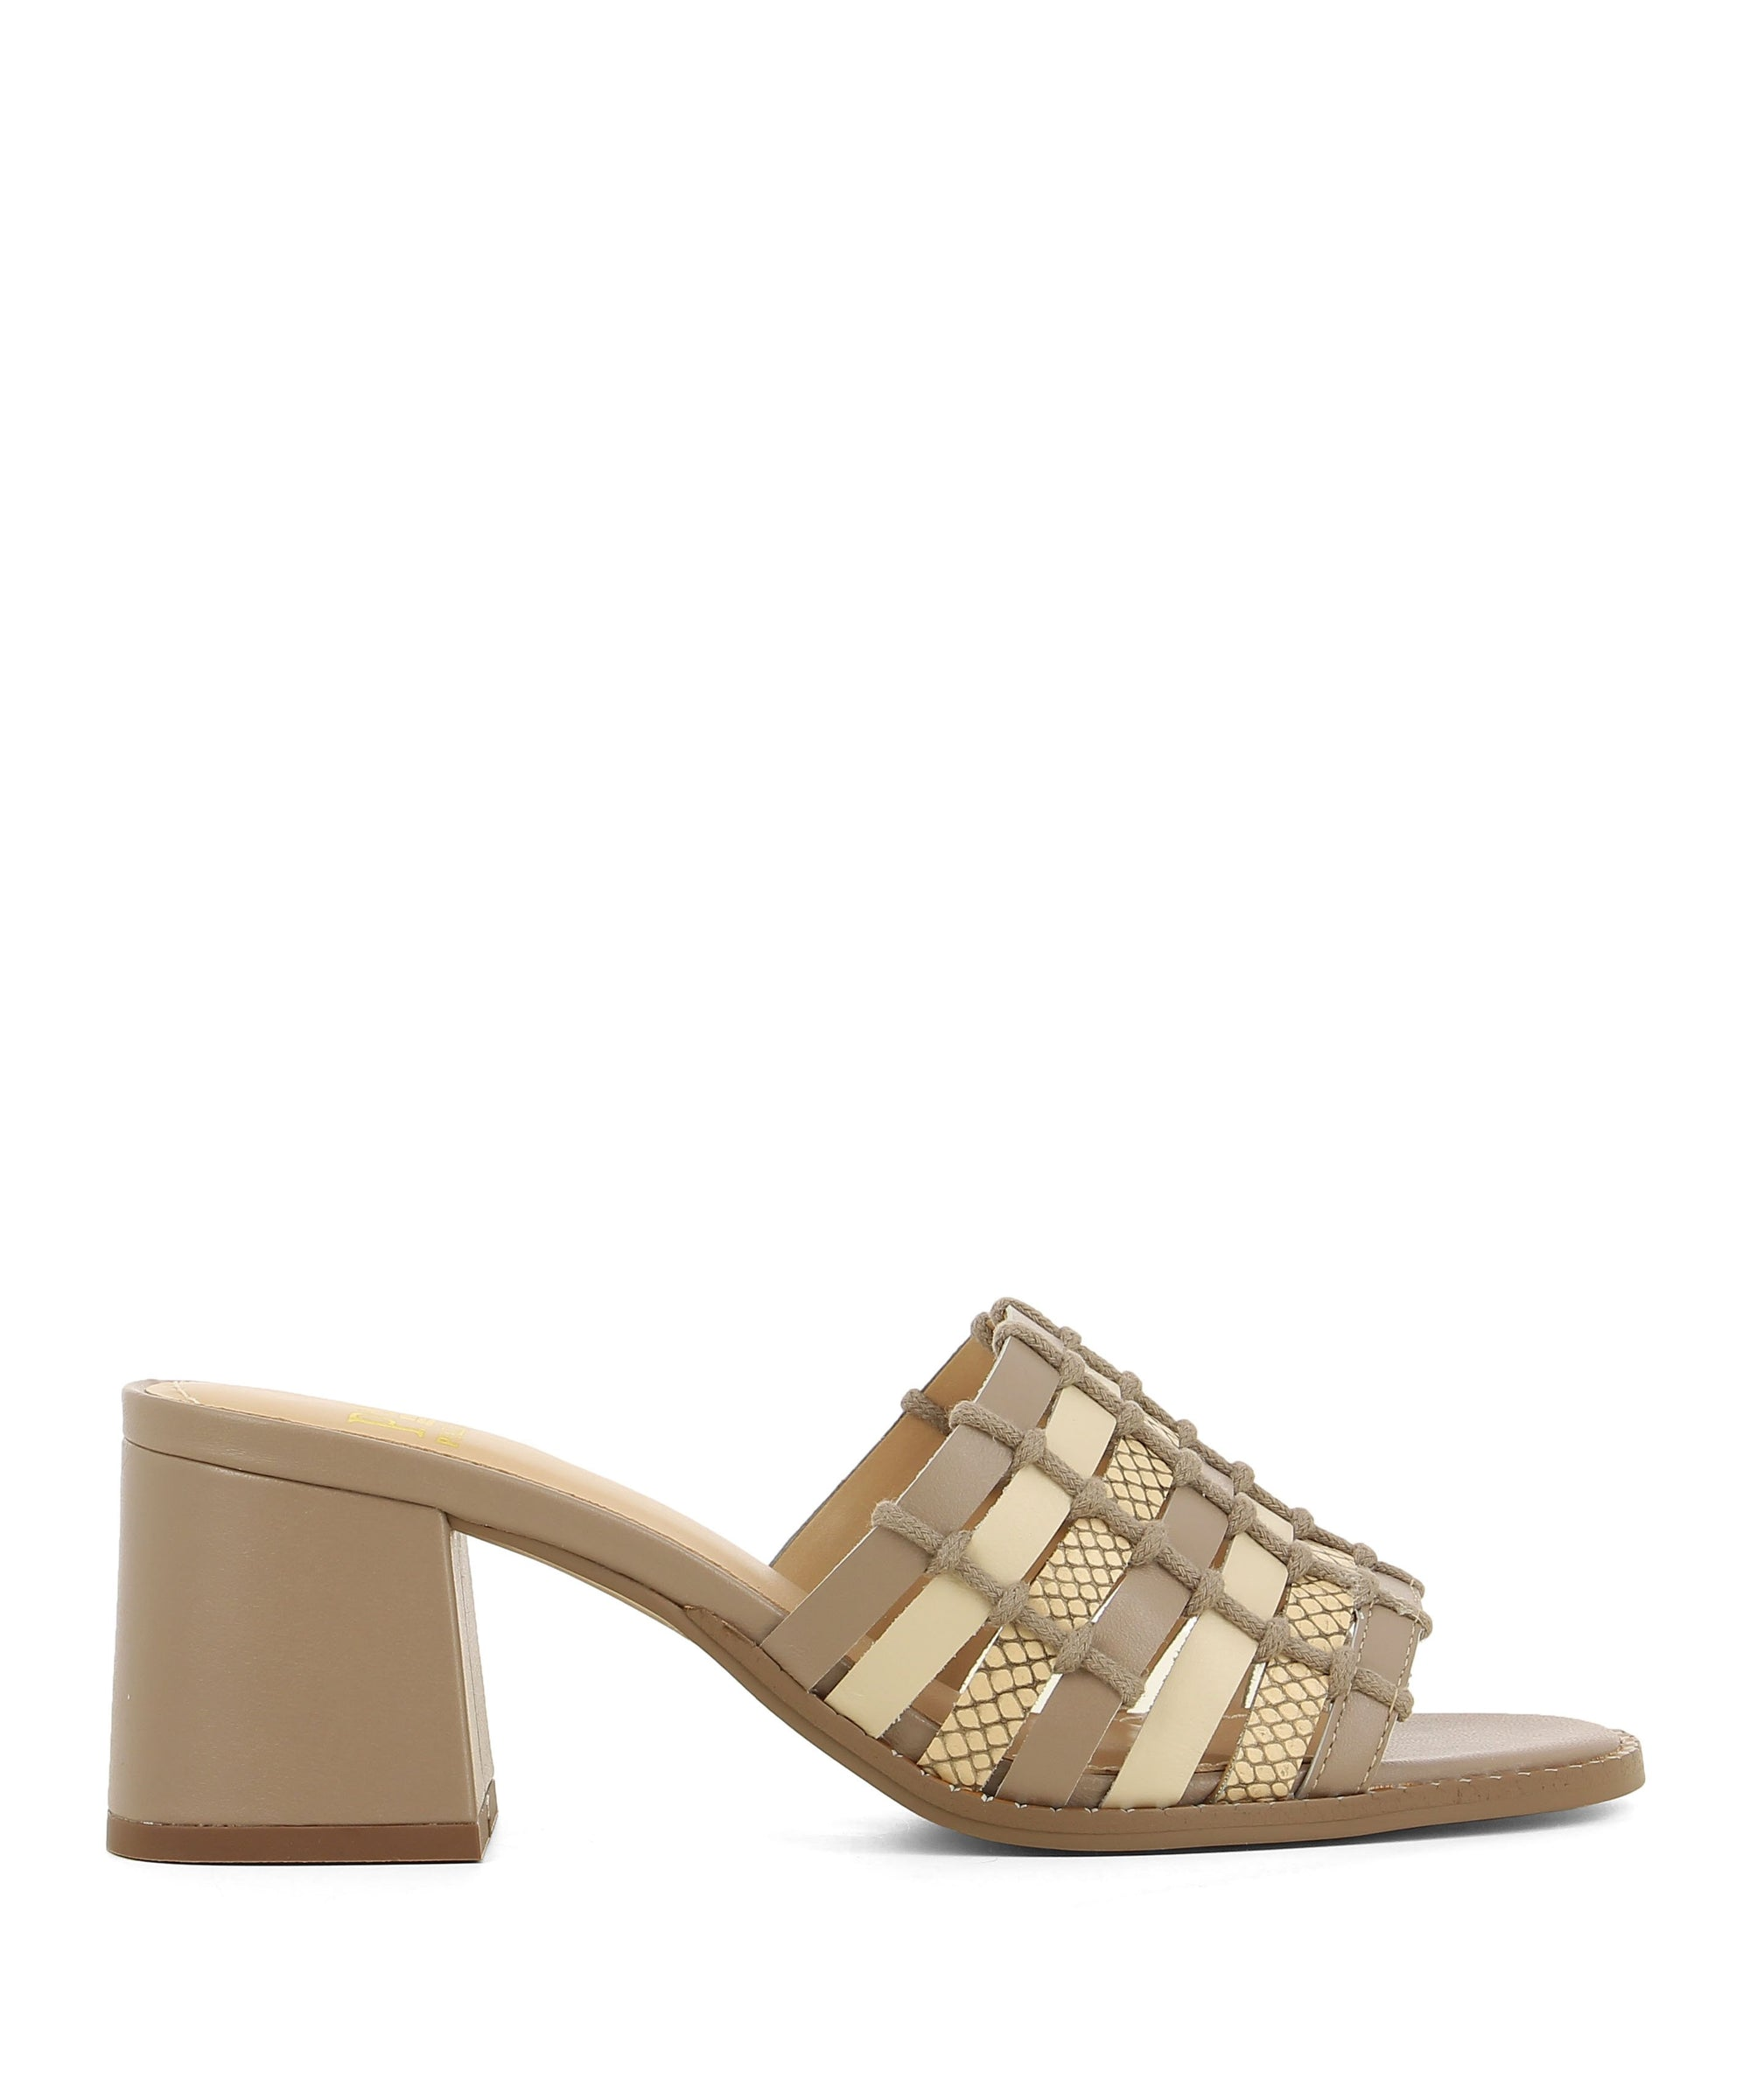 Intricate neutral leather mules that feature a woven multi coloured leather and textile upper, a block heel and a soft square toe by Piazza Grande.